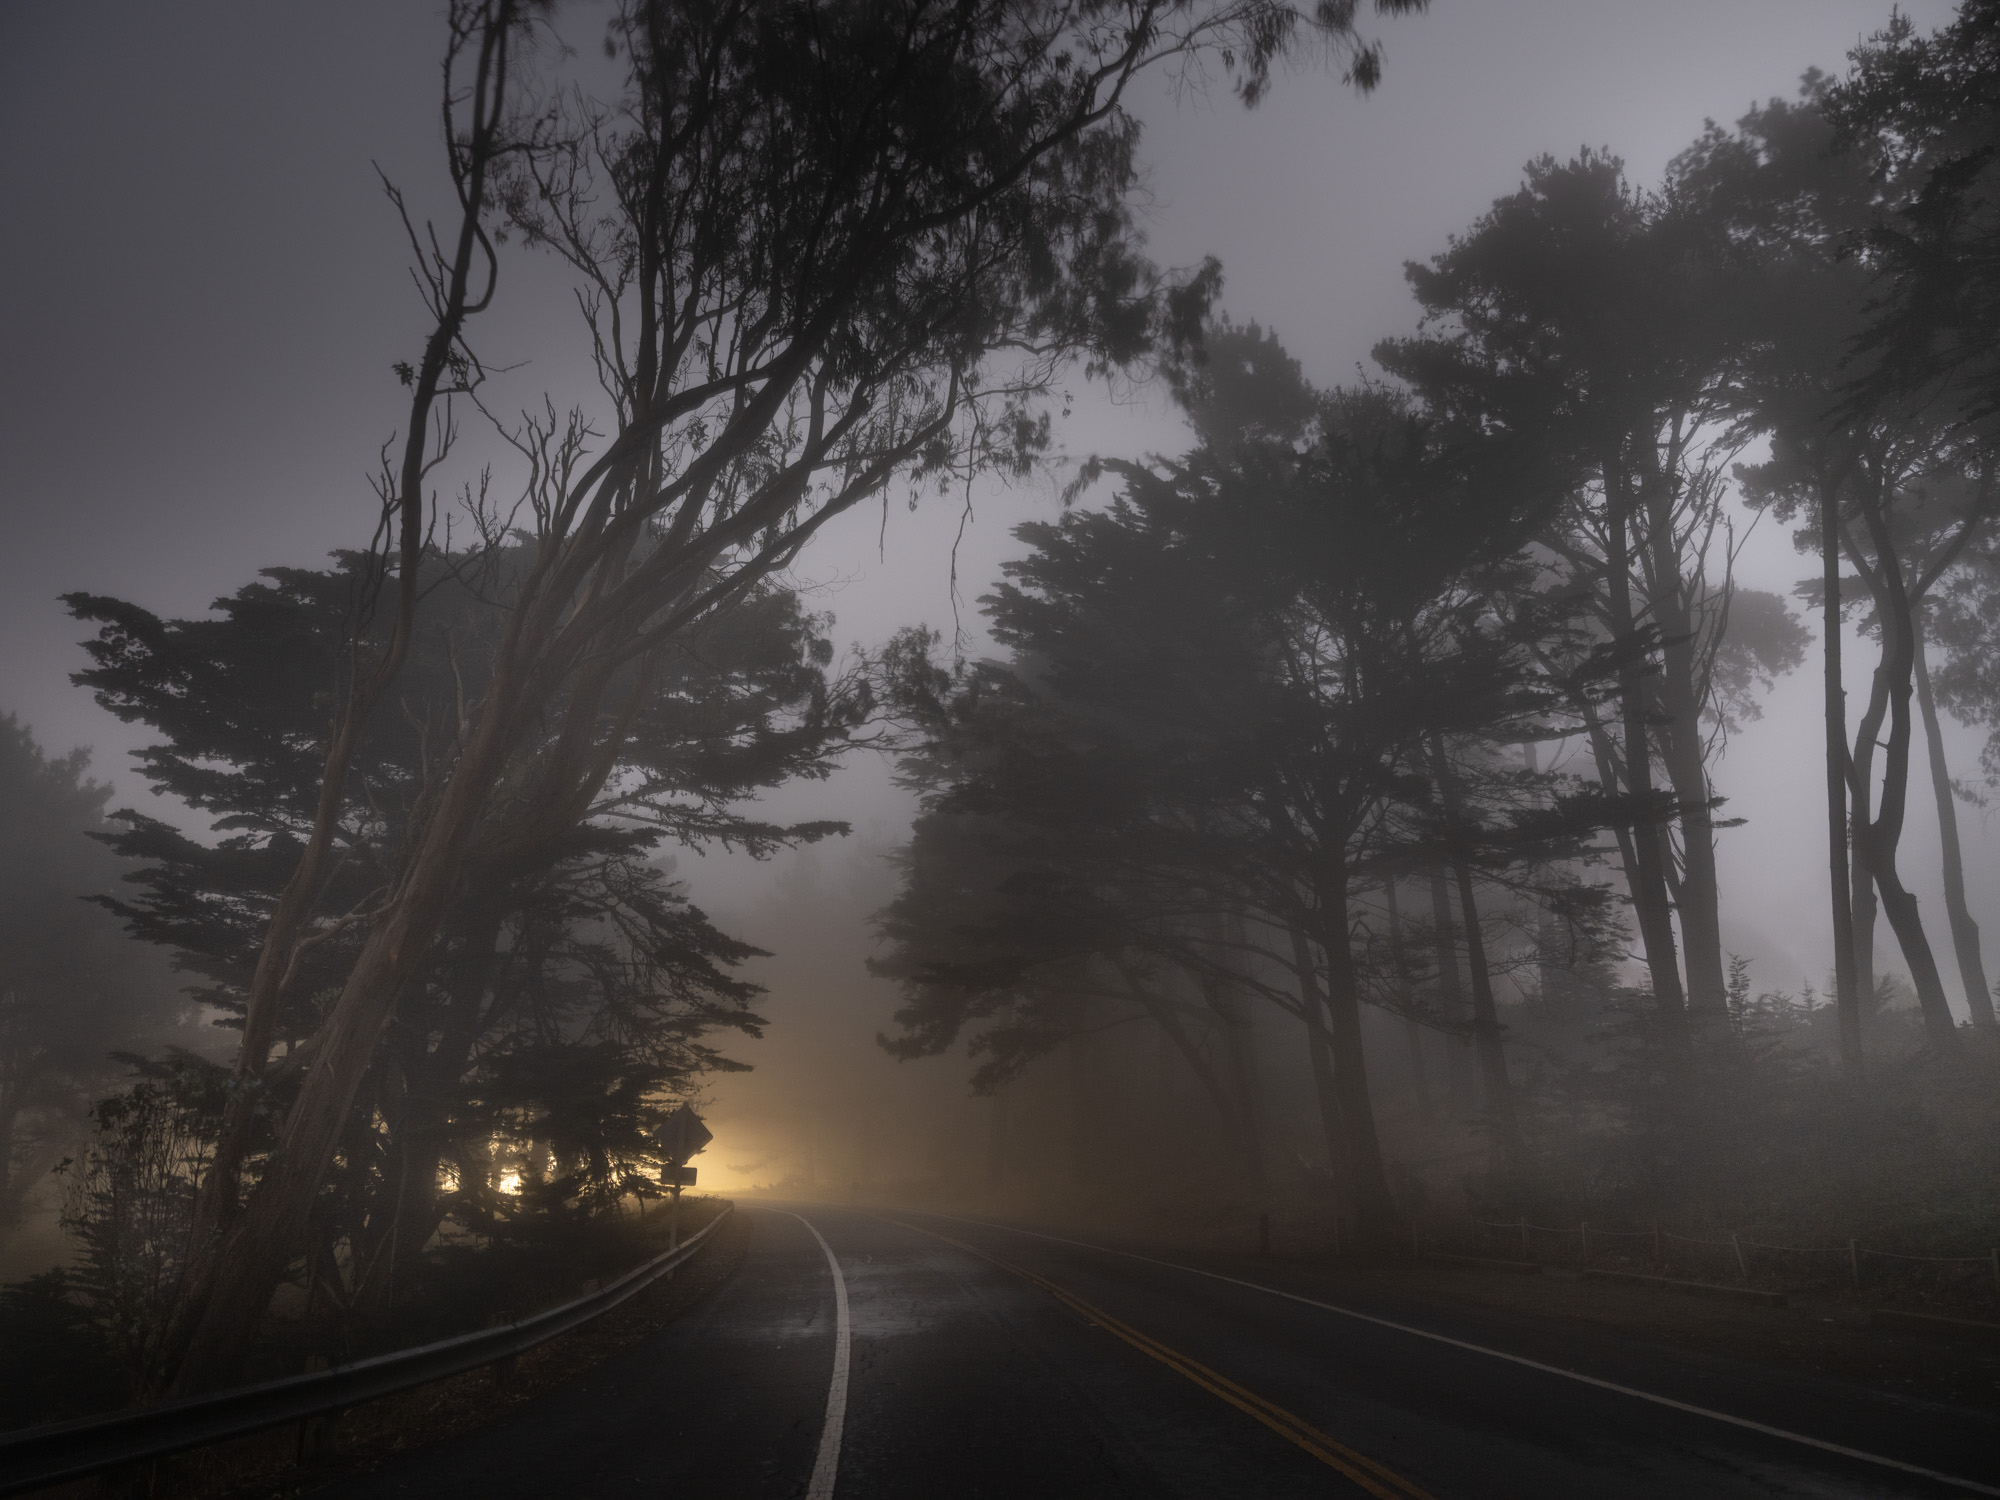 Road at night with fog and light in the distance.